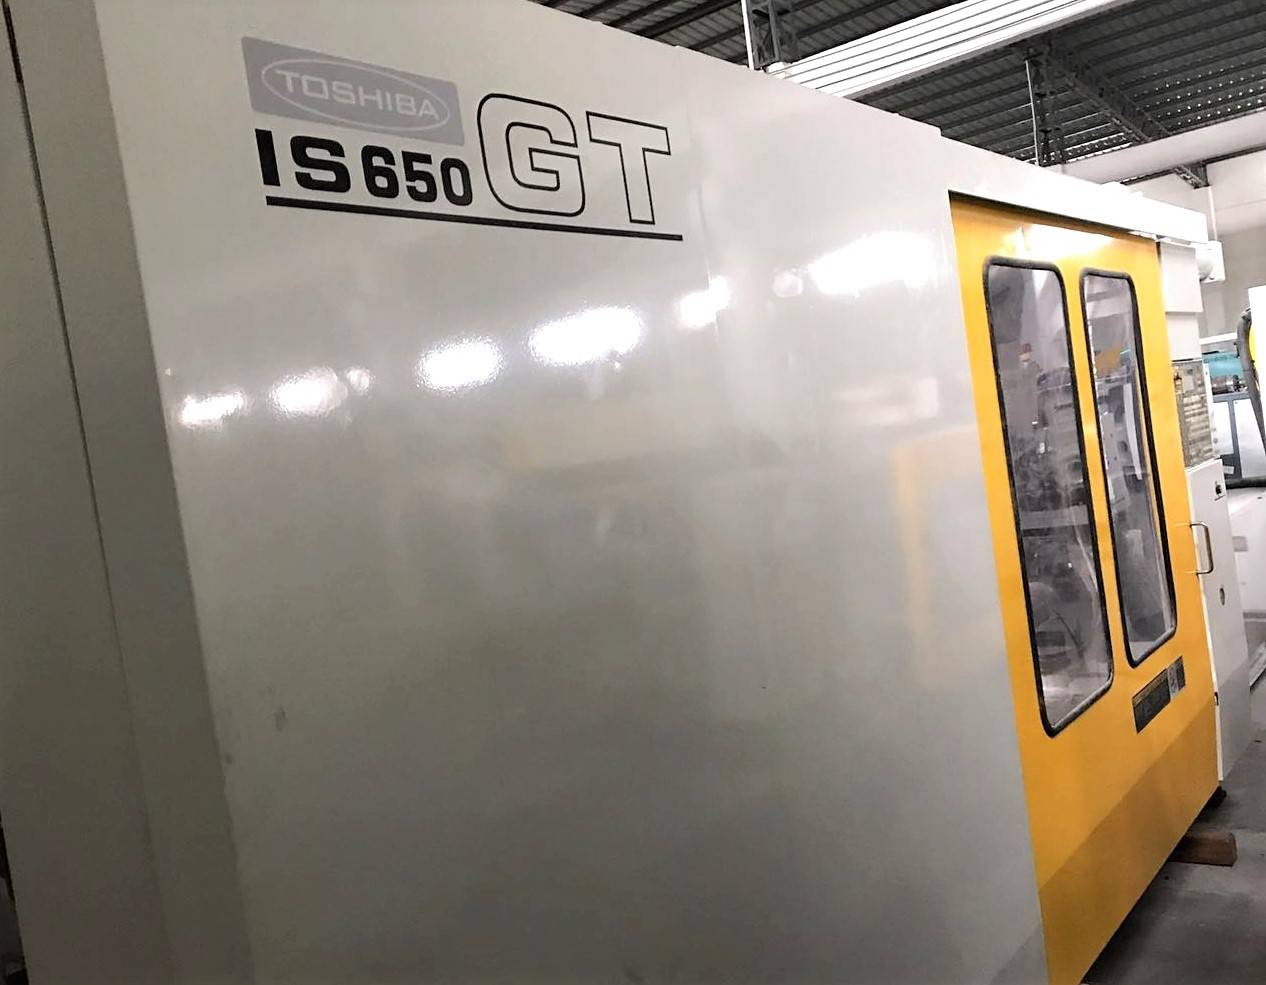 Toshiba 650t (IS650GT) Used Injection Molding Machine Featured Image